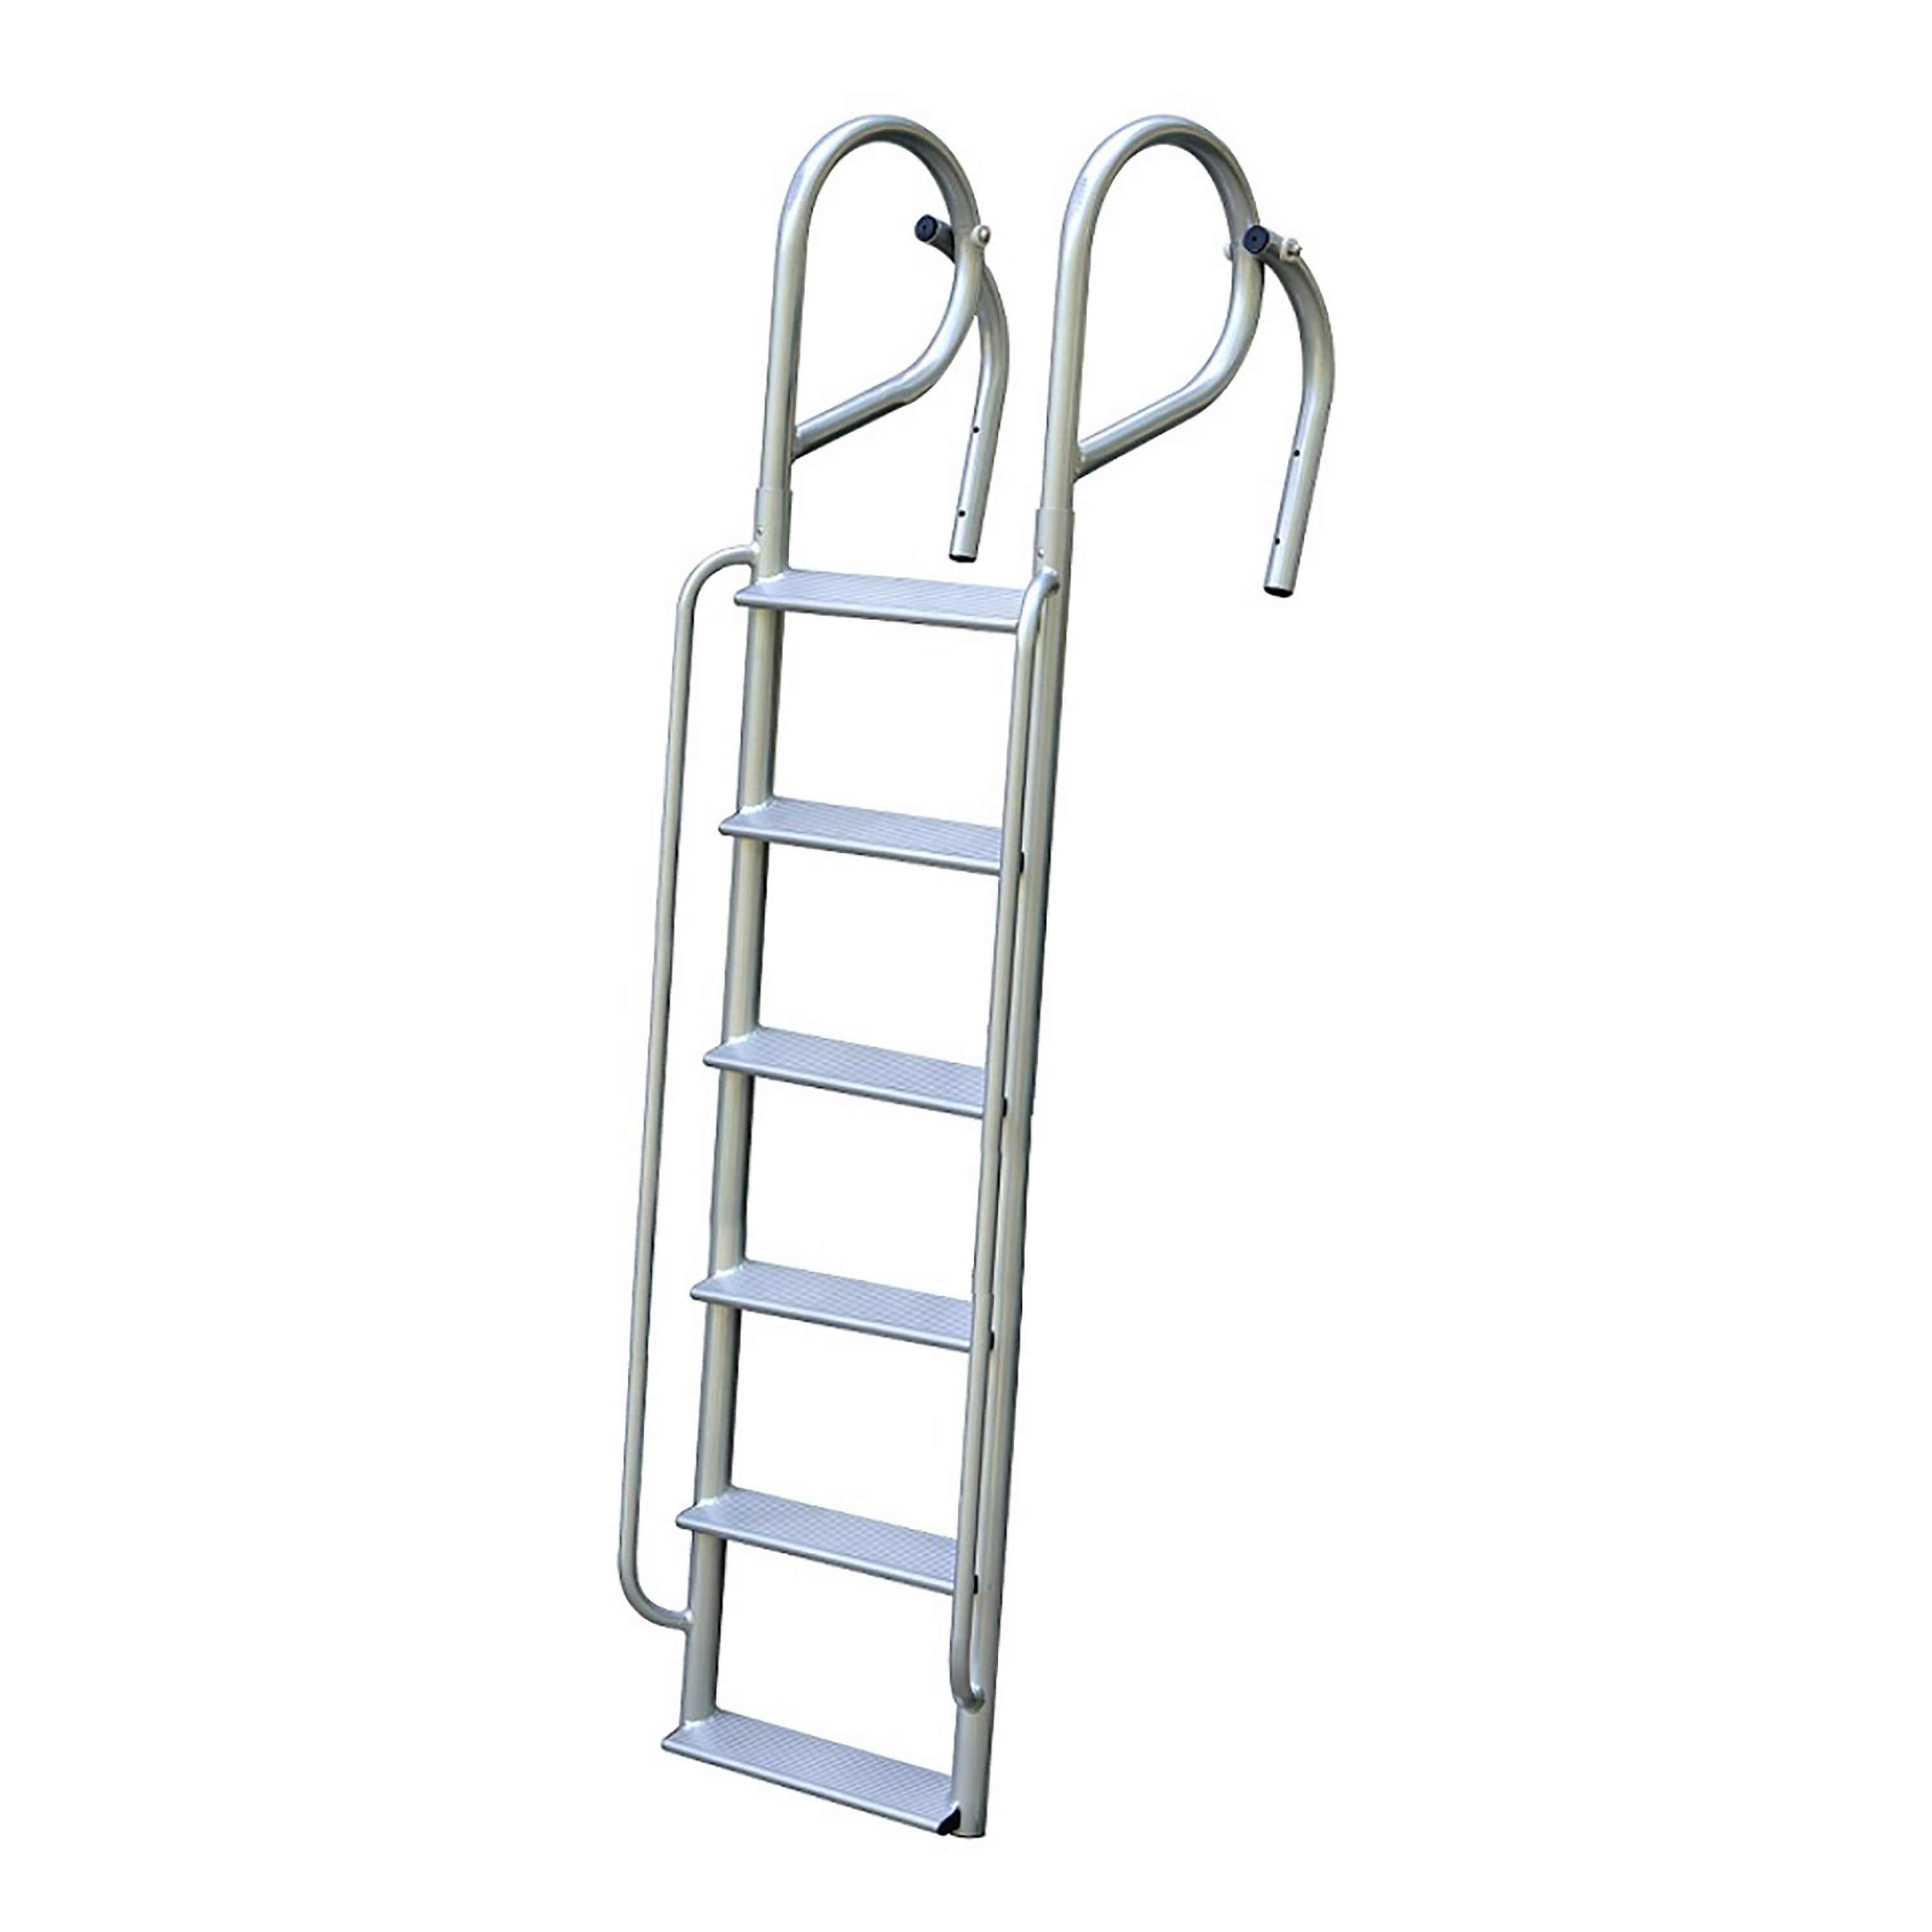 Aluminum Swing Ladder With Handrails 6 5 Wide Step 3 Lengths Avai Tommy Docks